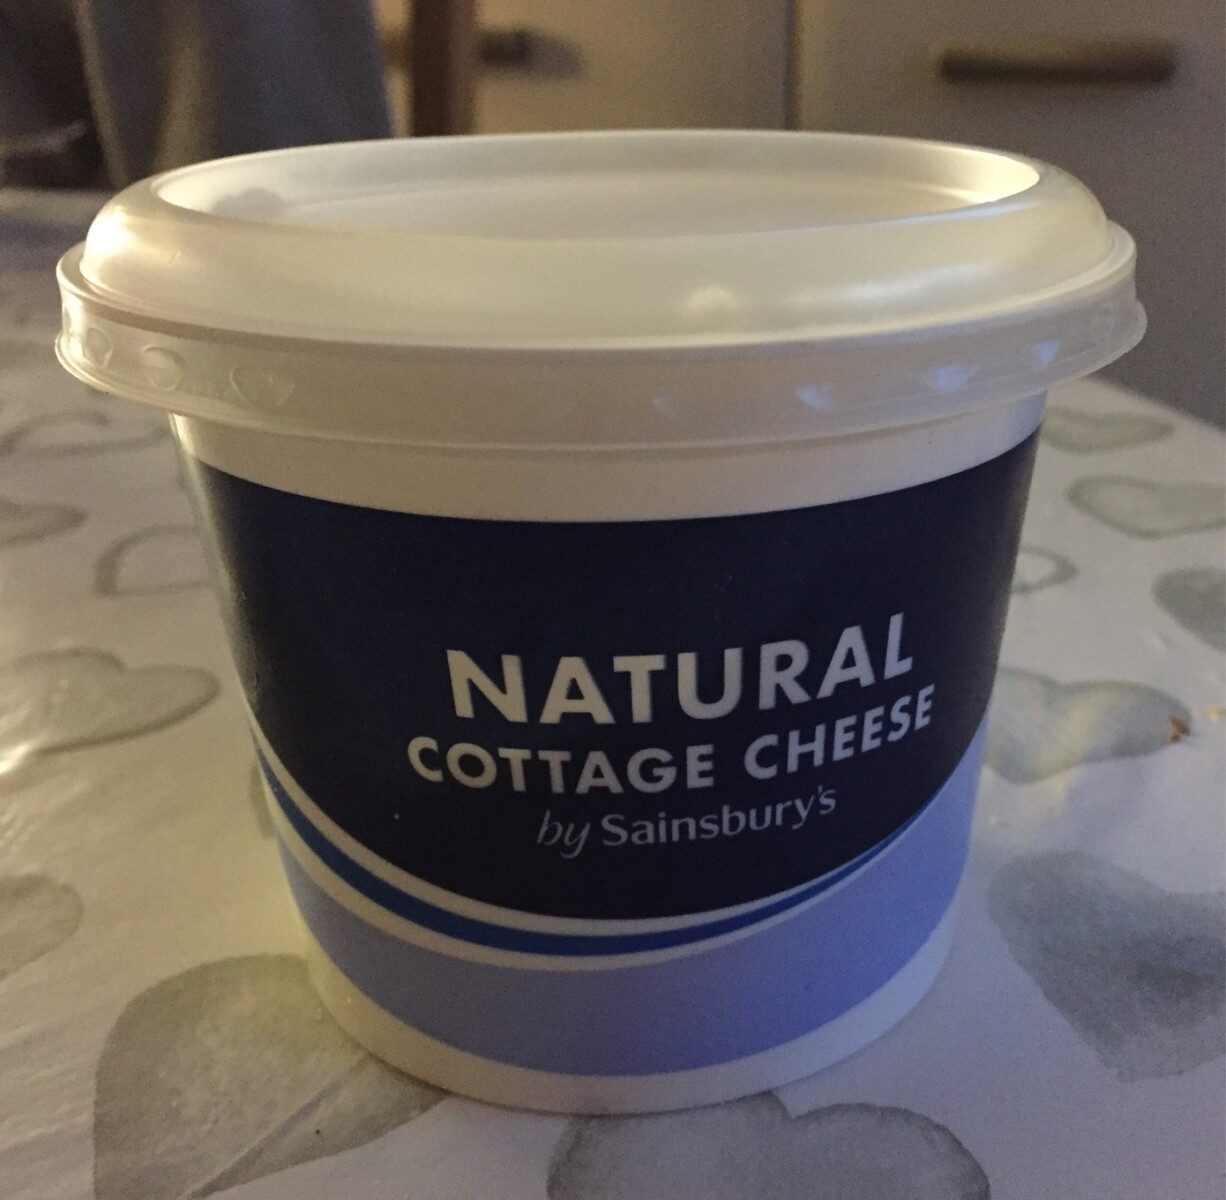 Natural Cottage Cheese - Product